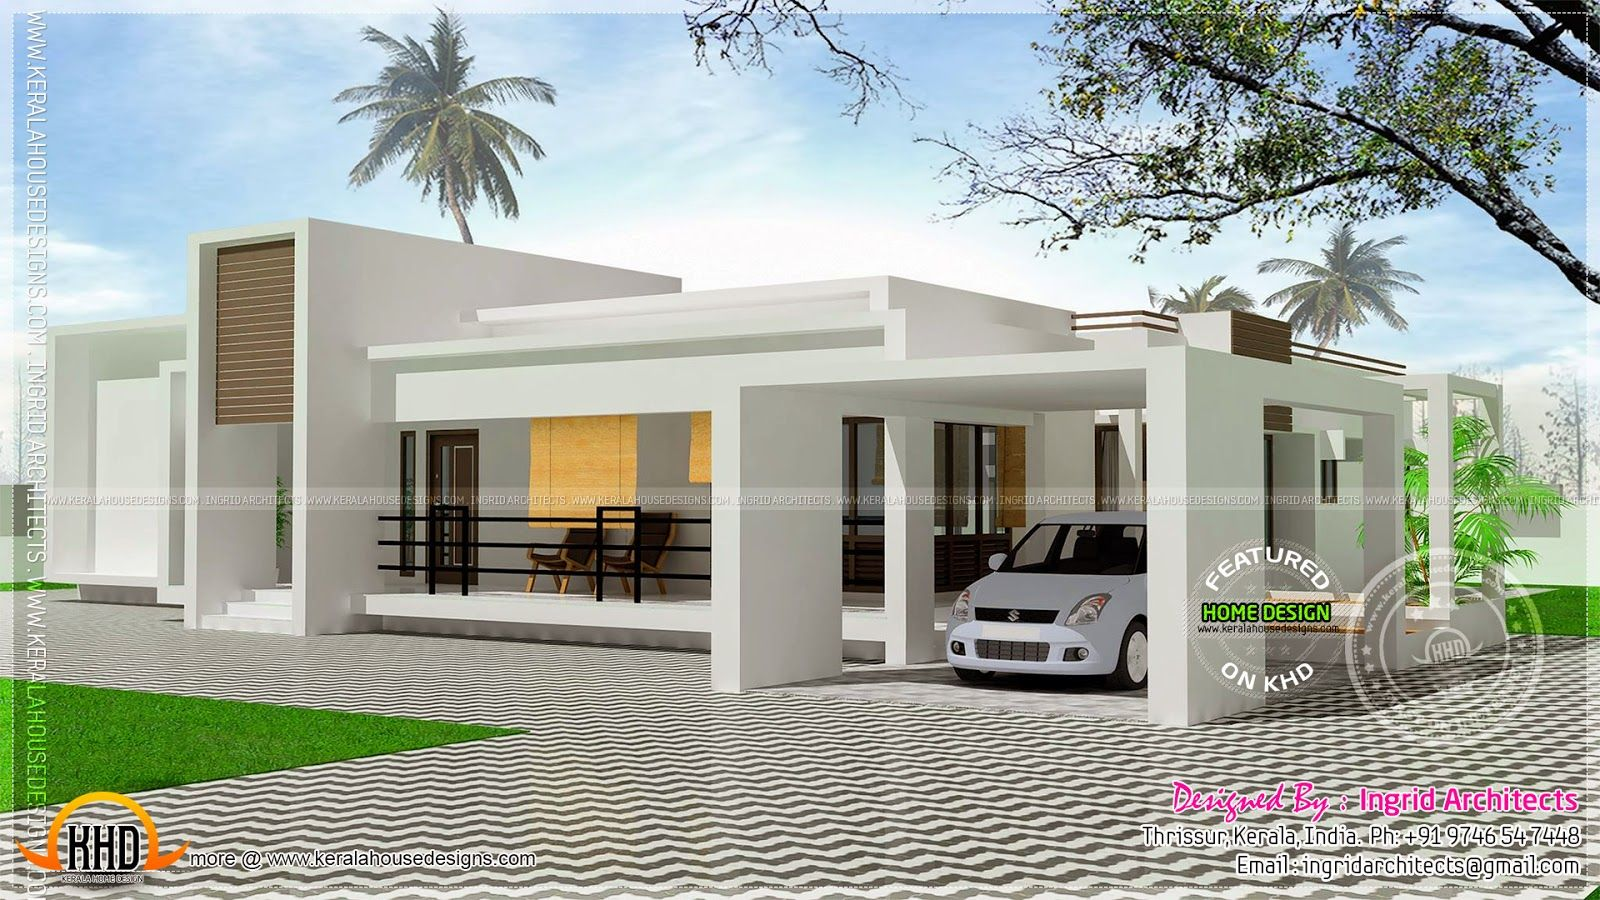 Elevations of single storey residential buildings google for Favorite house plans